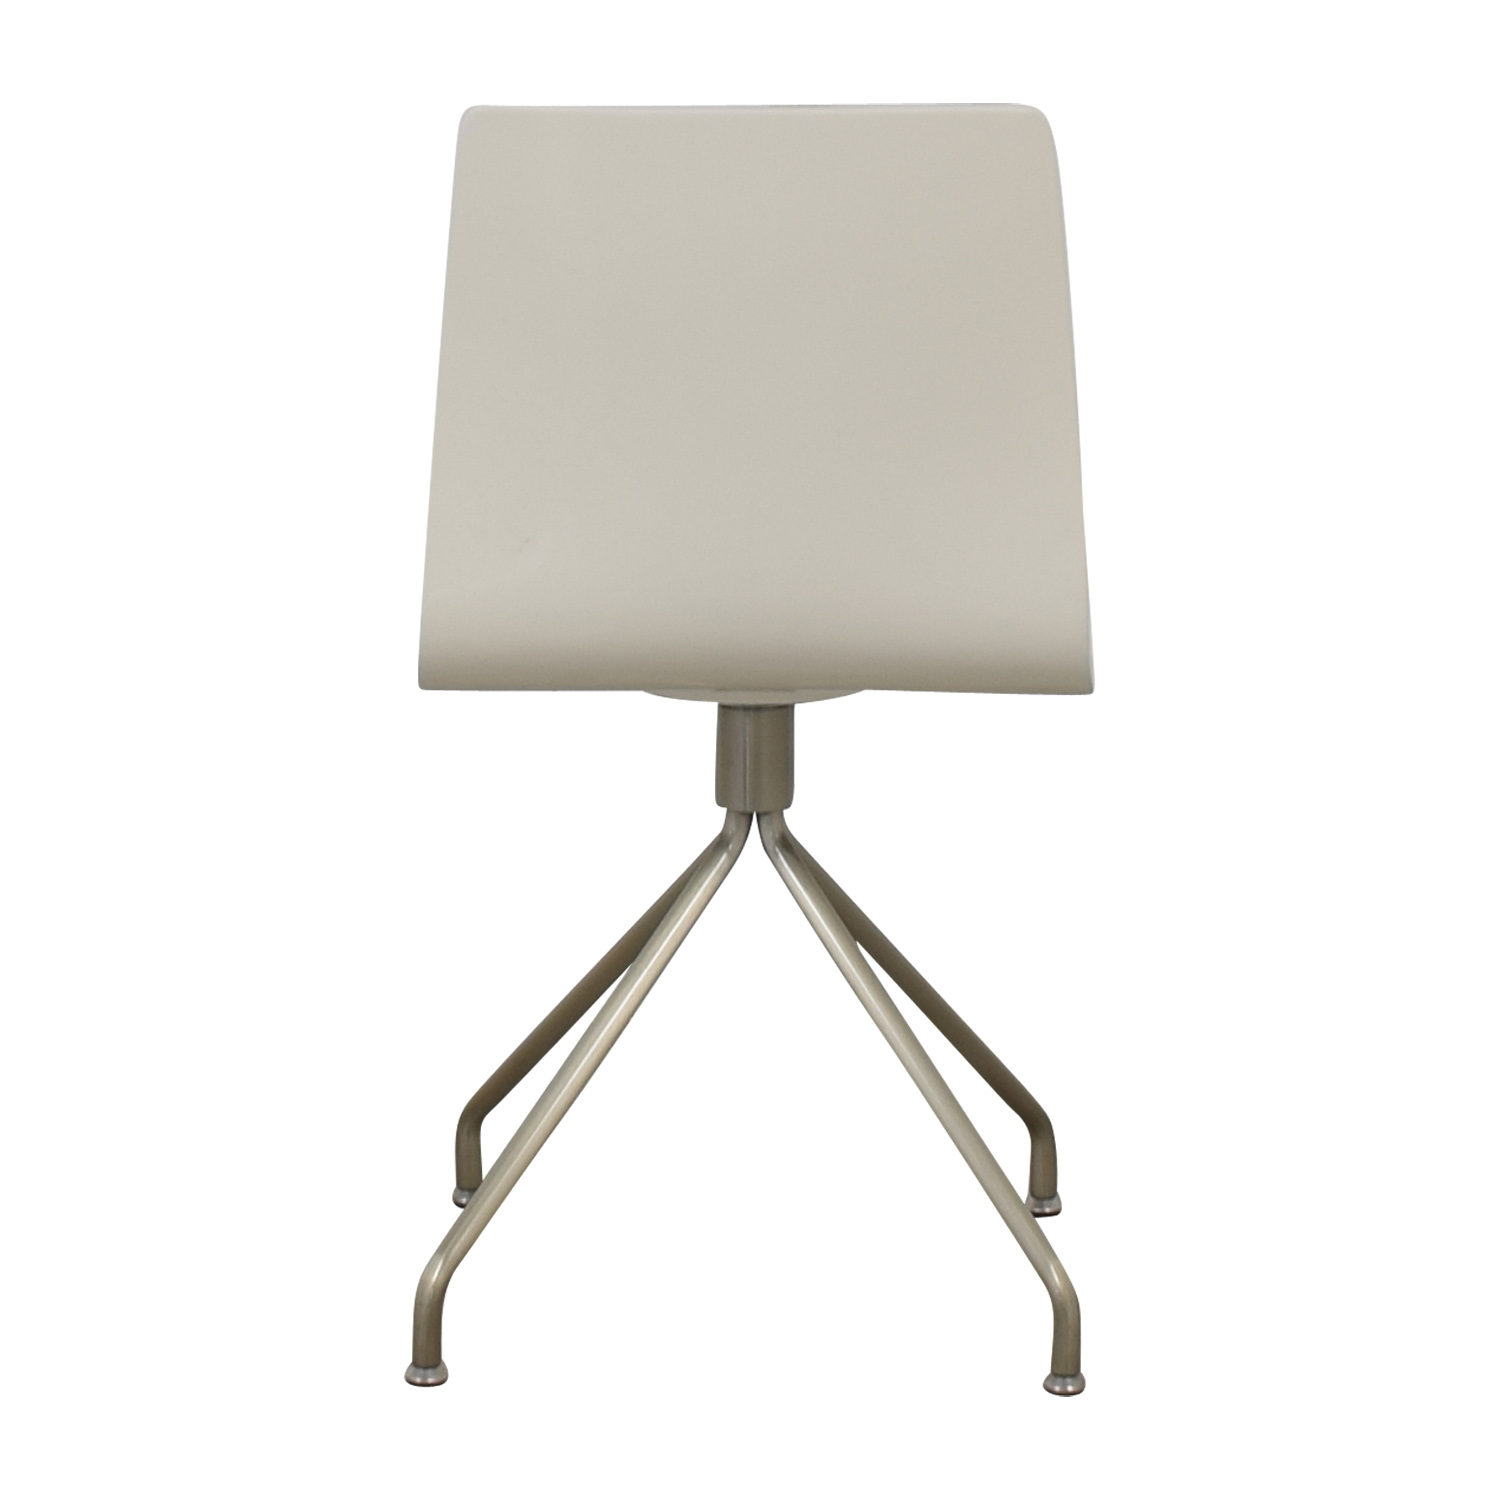 Crate & Barrel Crate & Barrel White Office Chair nyc